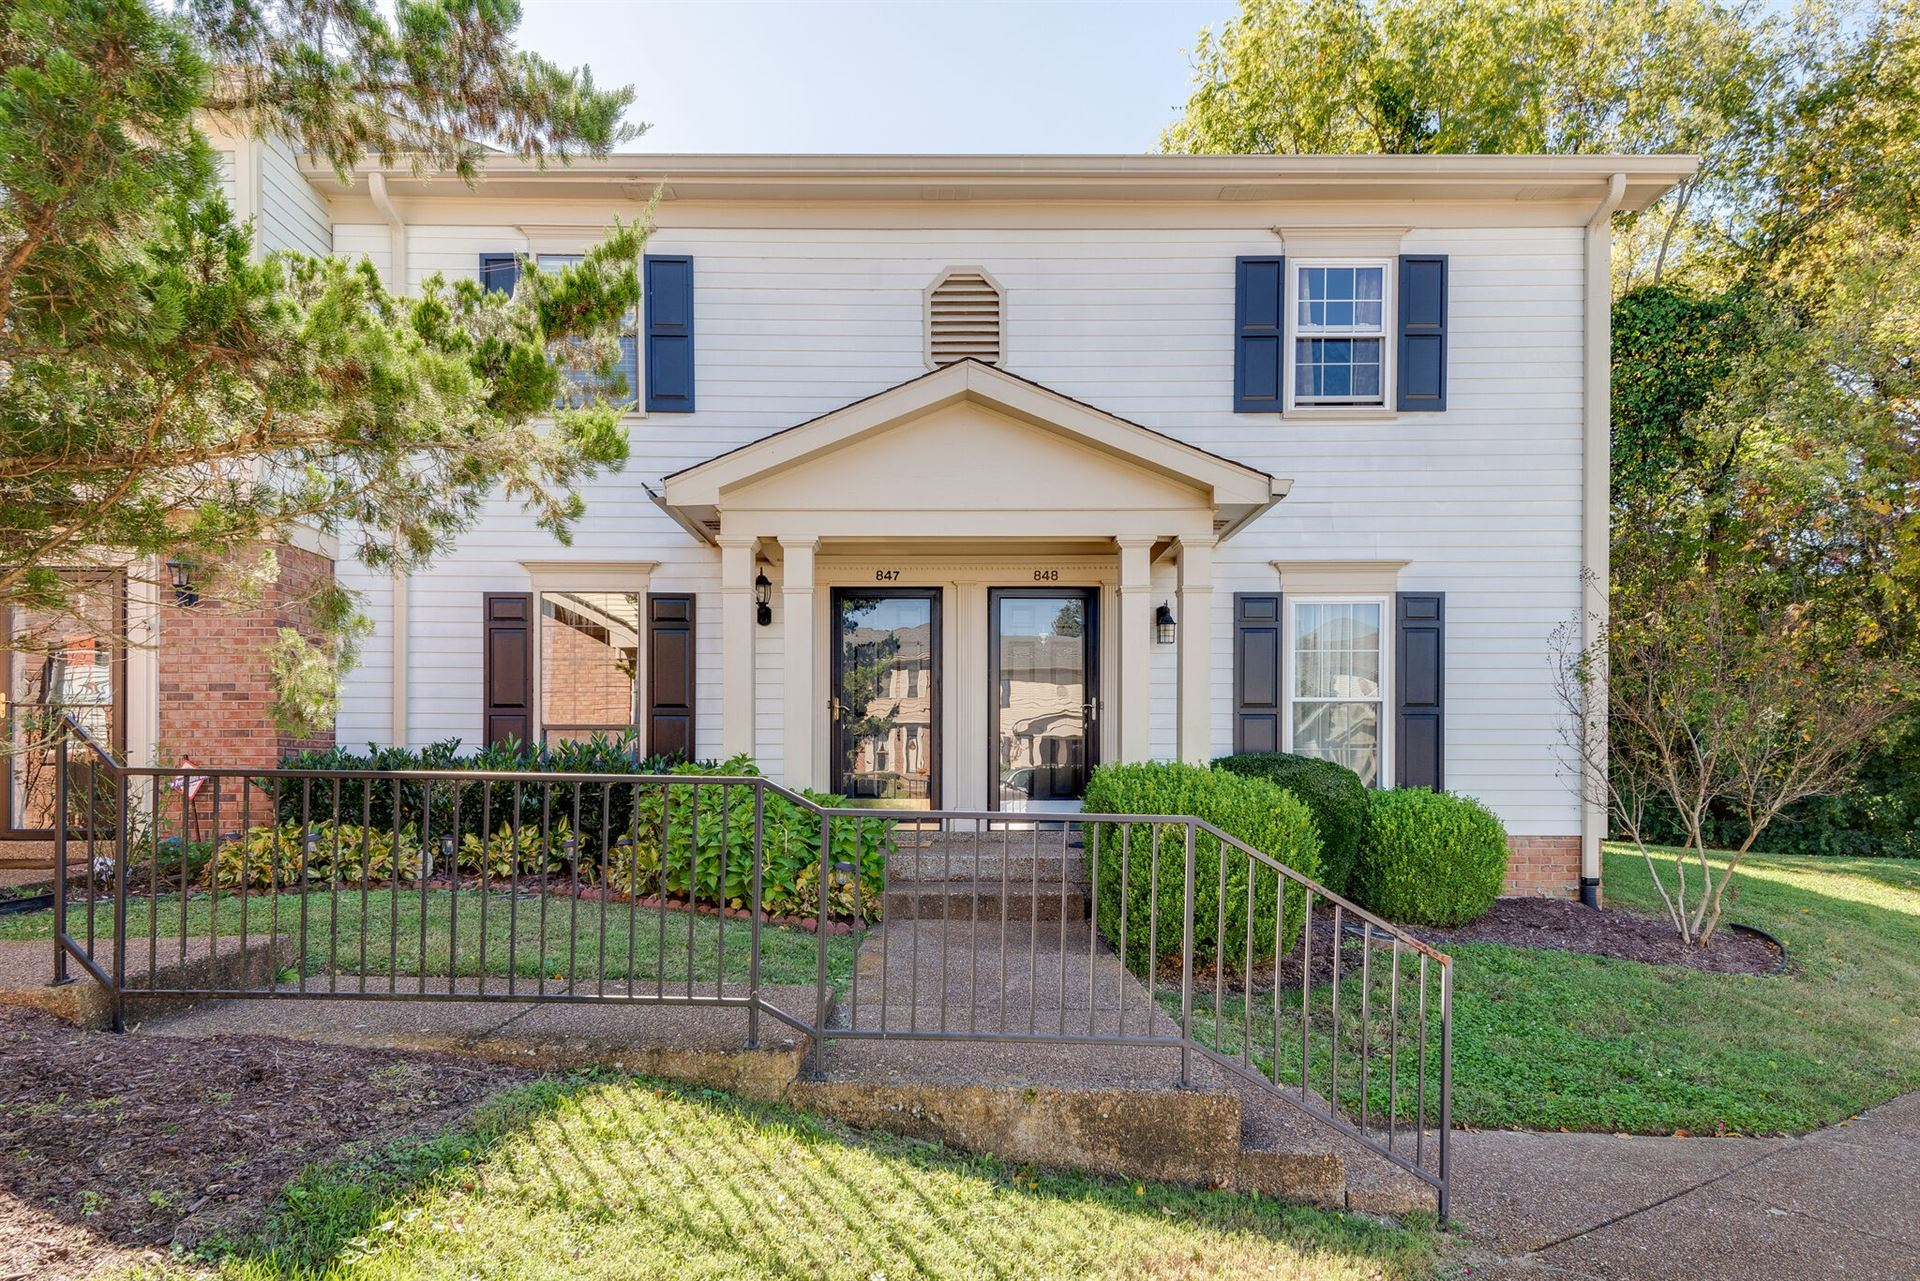 847 Brentwood Pt, Brentwood, TN 37027 - MLS#: 2199636